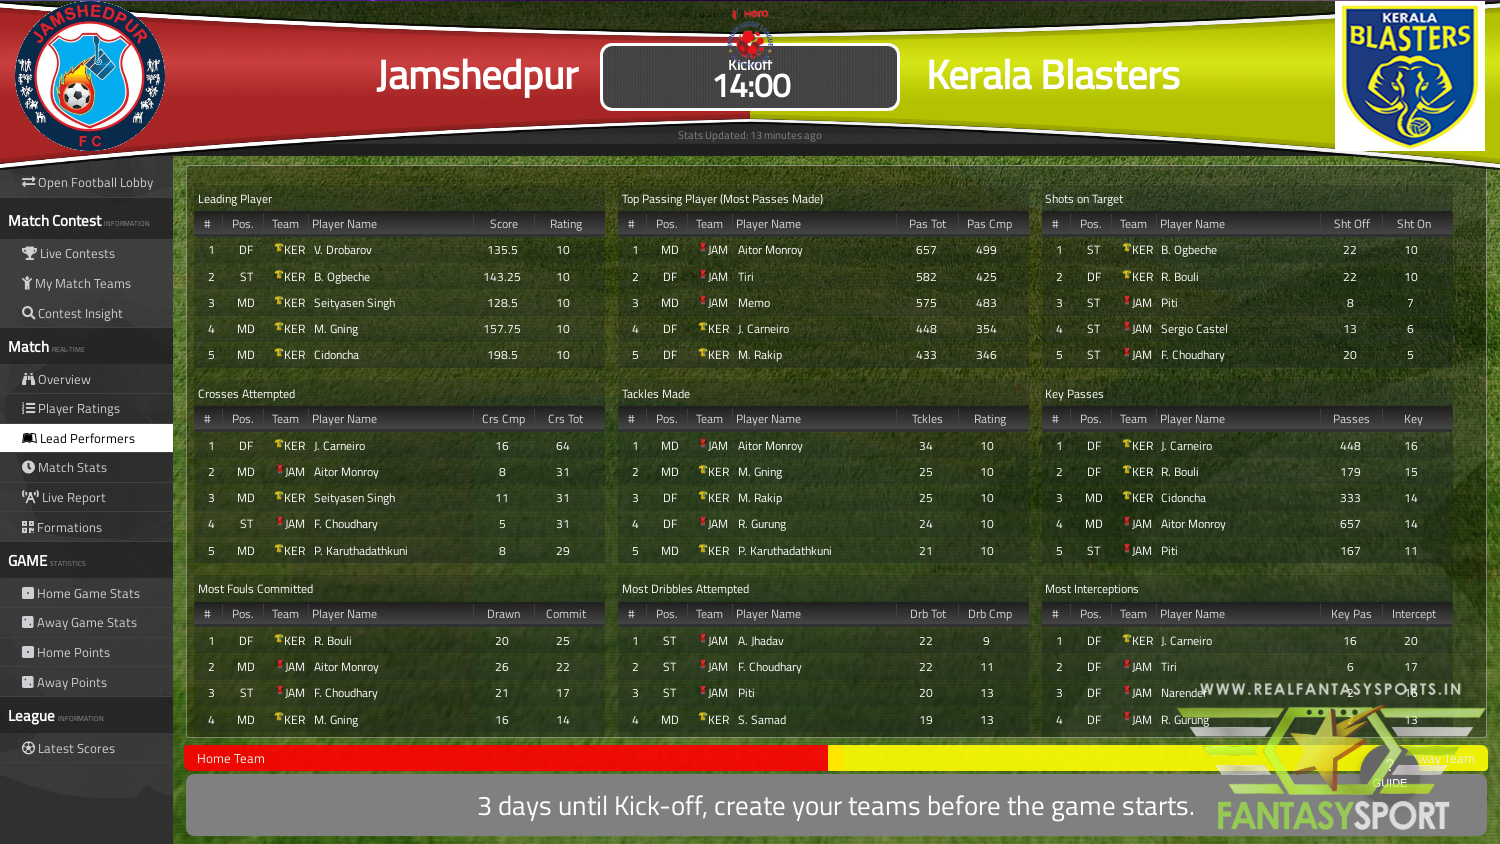 Jamshedpur Vs Kerala Blasters Fantasy Football Team